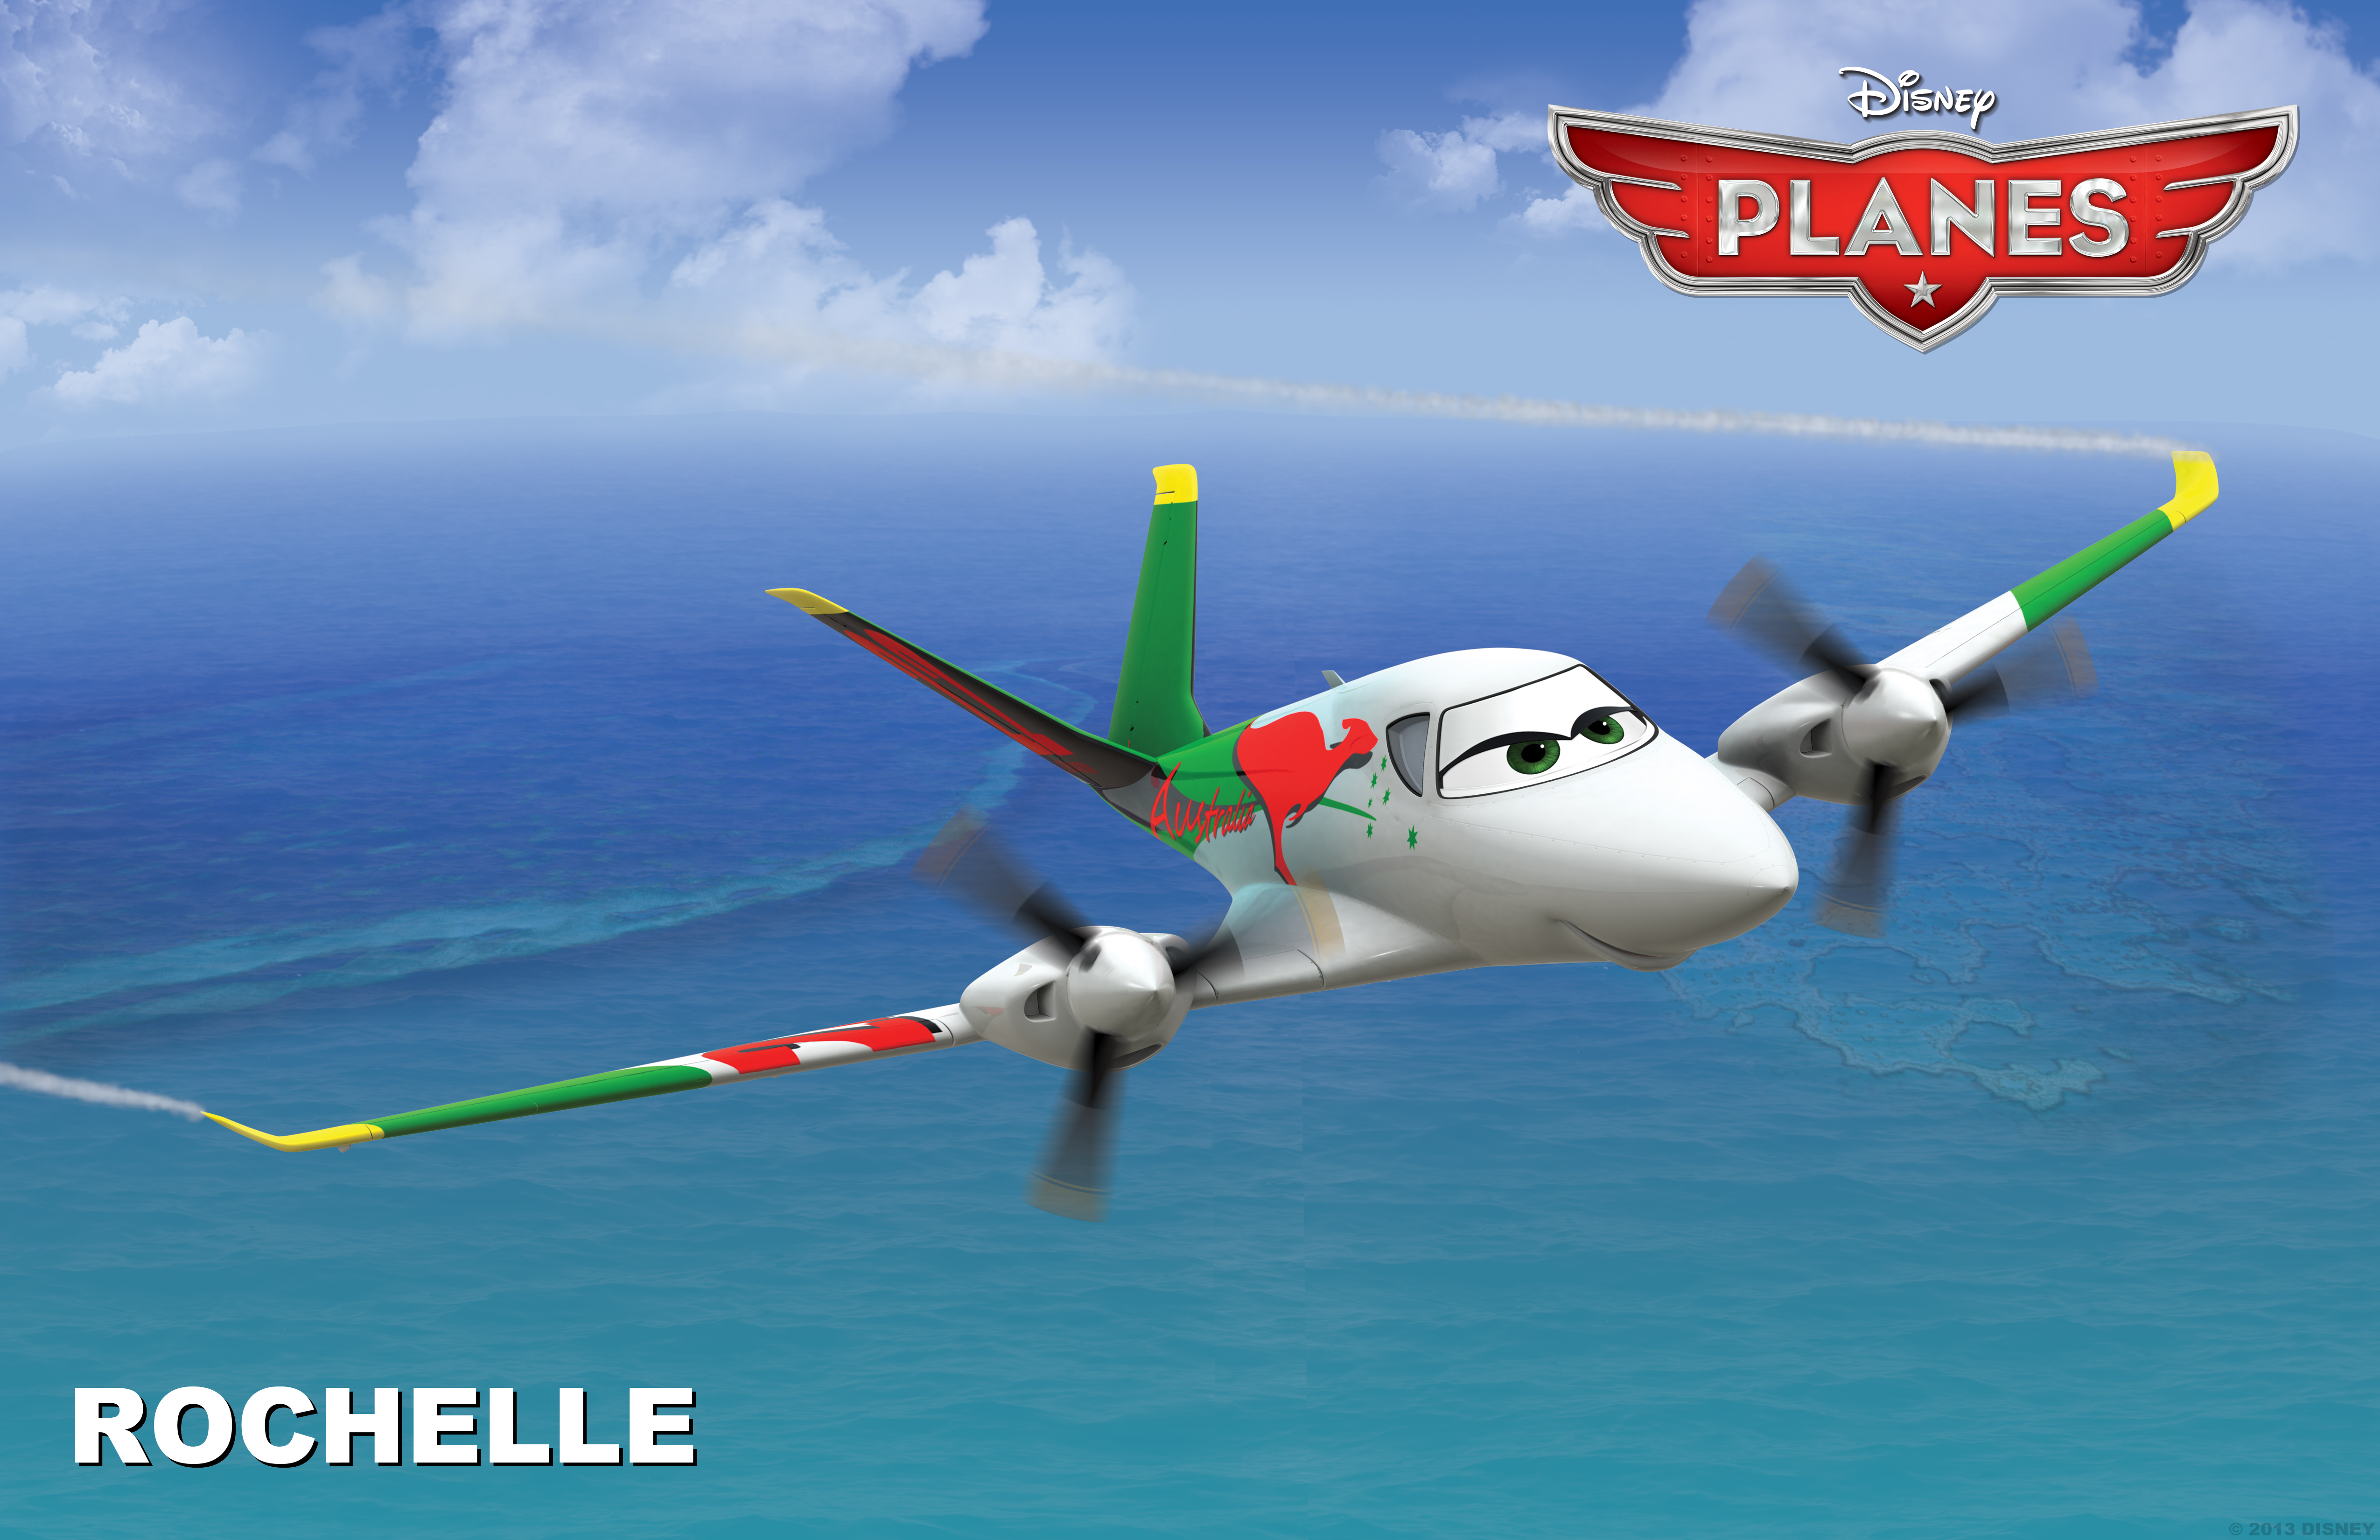 disney planes rochelle wallpaper 50460